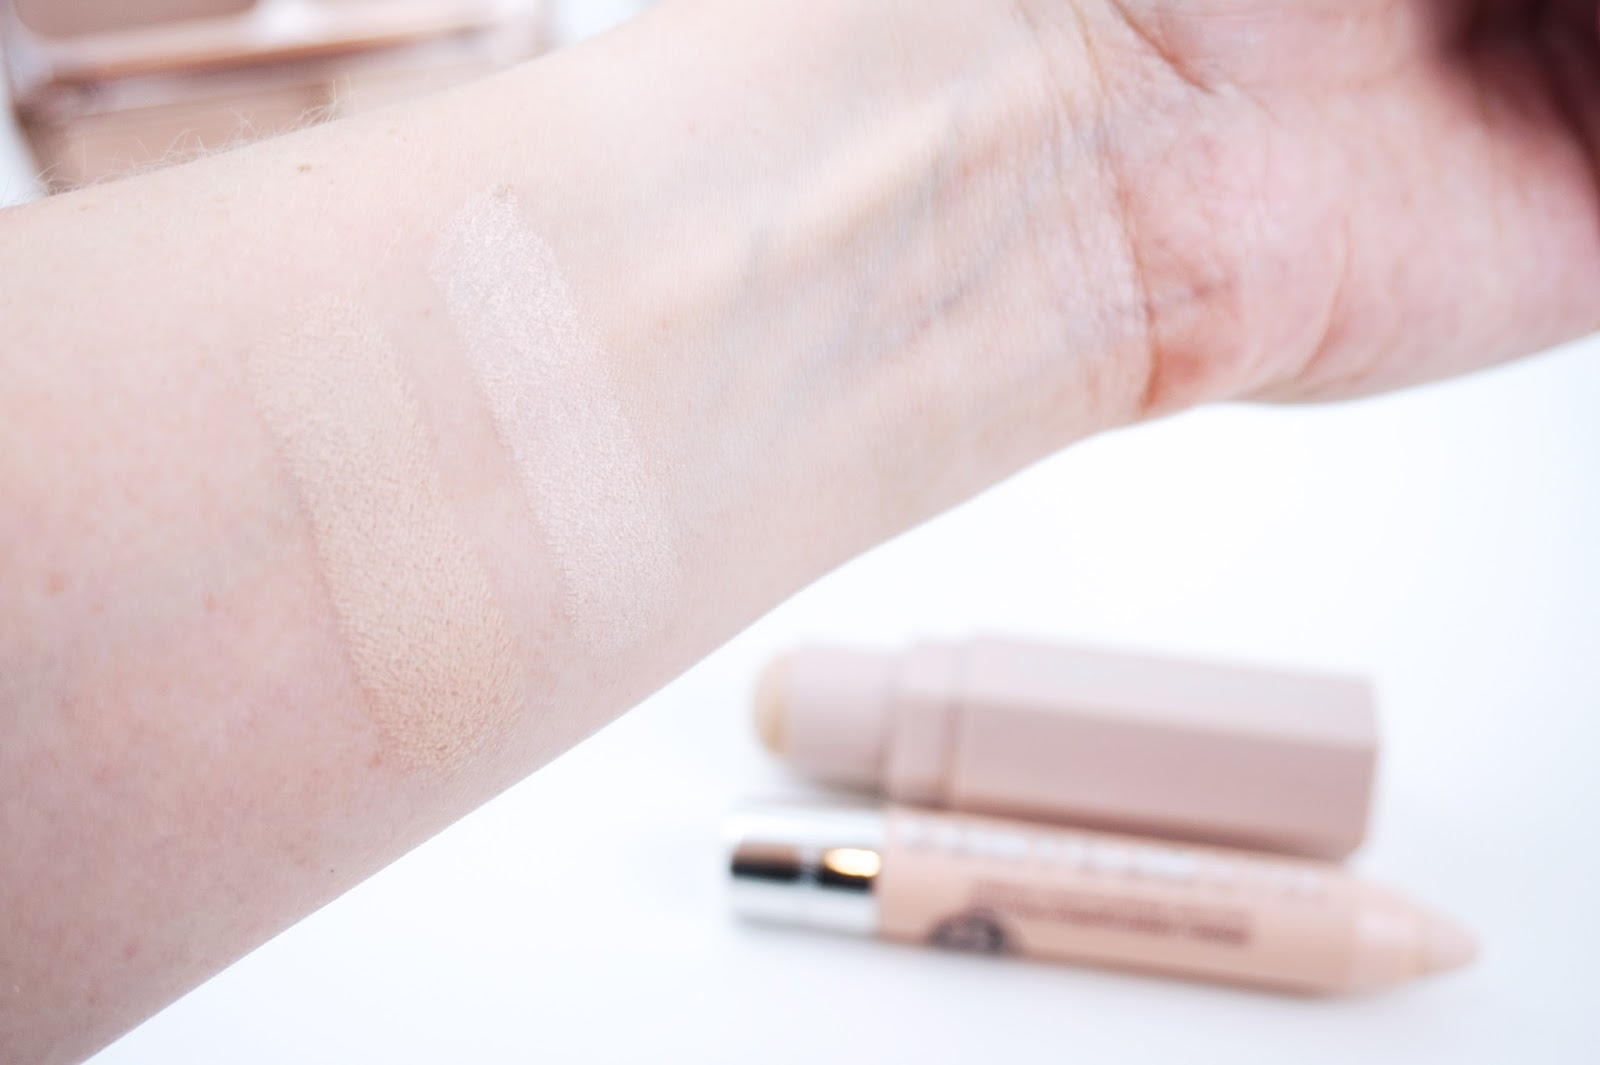 Fenty beauty technic cosmetics concealer swatch